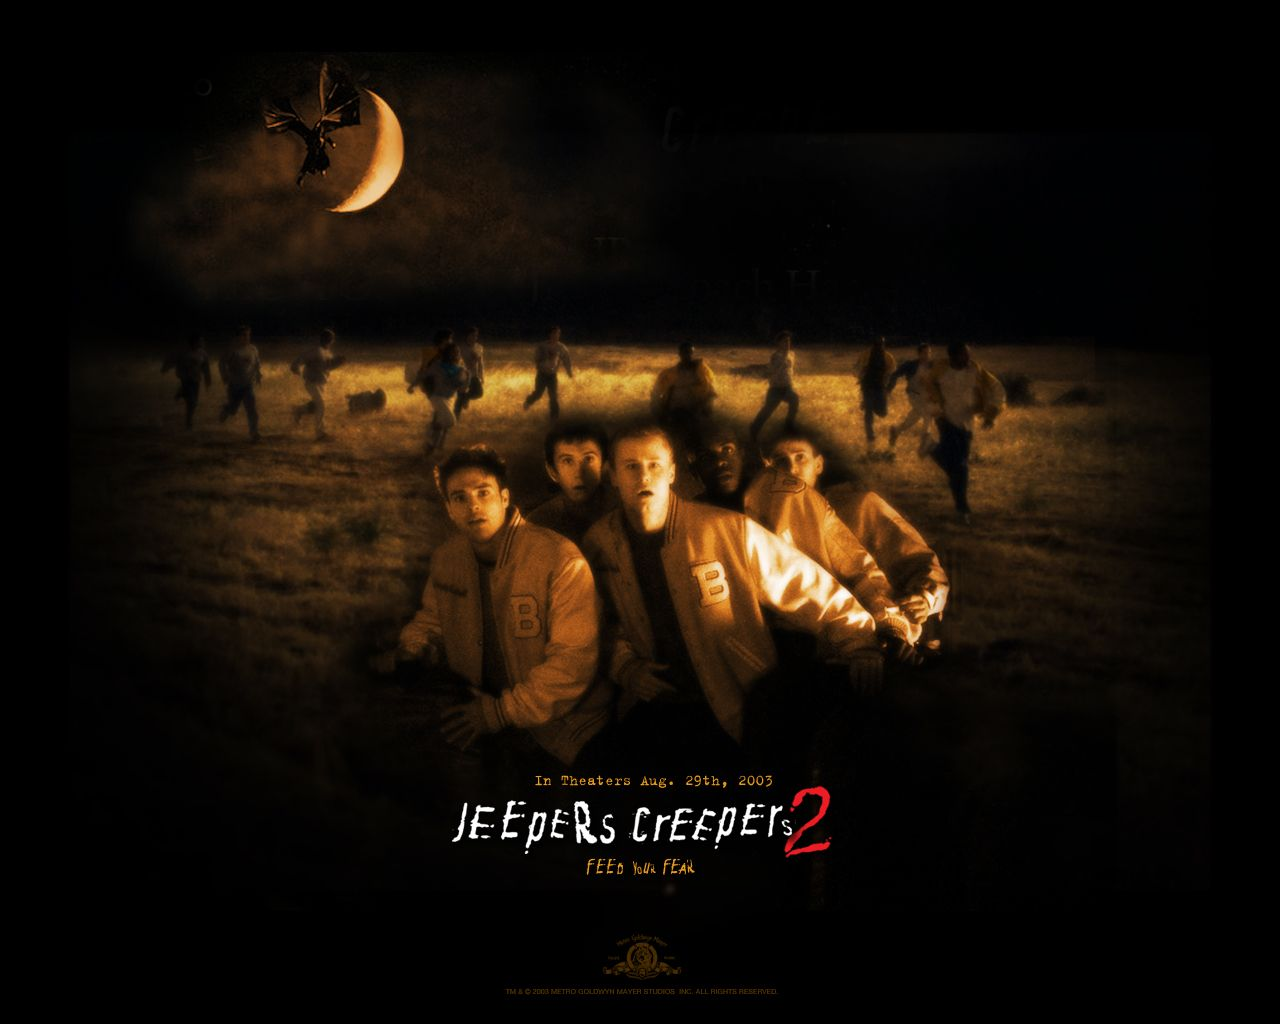 Watch Streaming Hd Jeepers Creepers Ii Starring Jonathan Breck Ray Wise Nicki Aycox Garikayi Mutambirwa Set A Few Days A Jeepers Creepers Jeepers Creepers